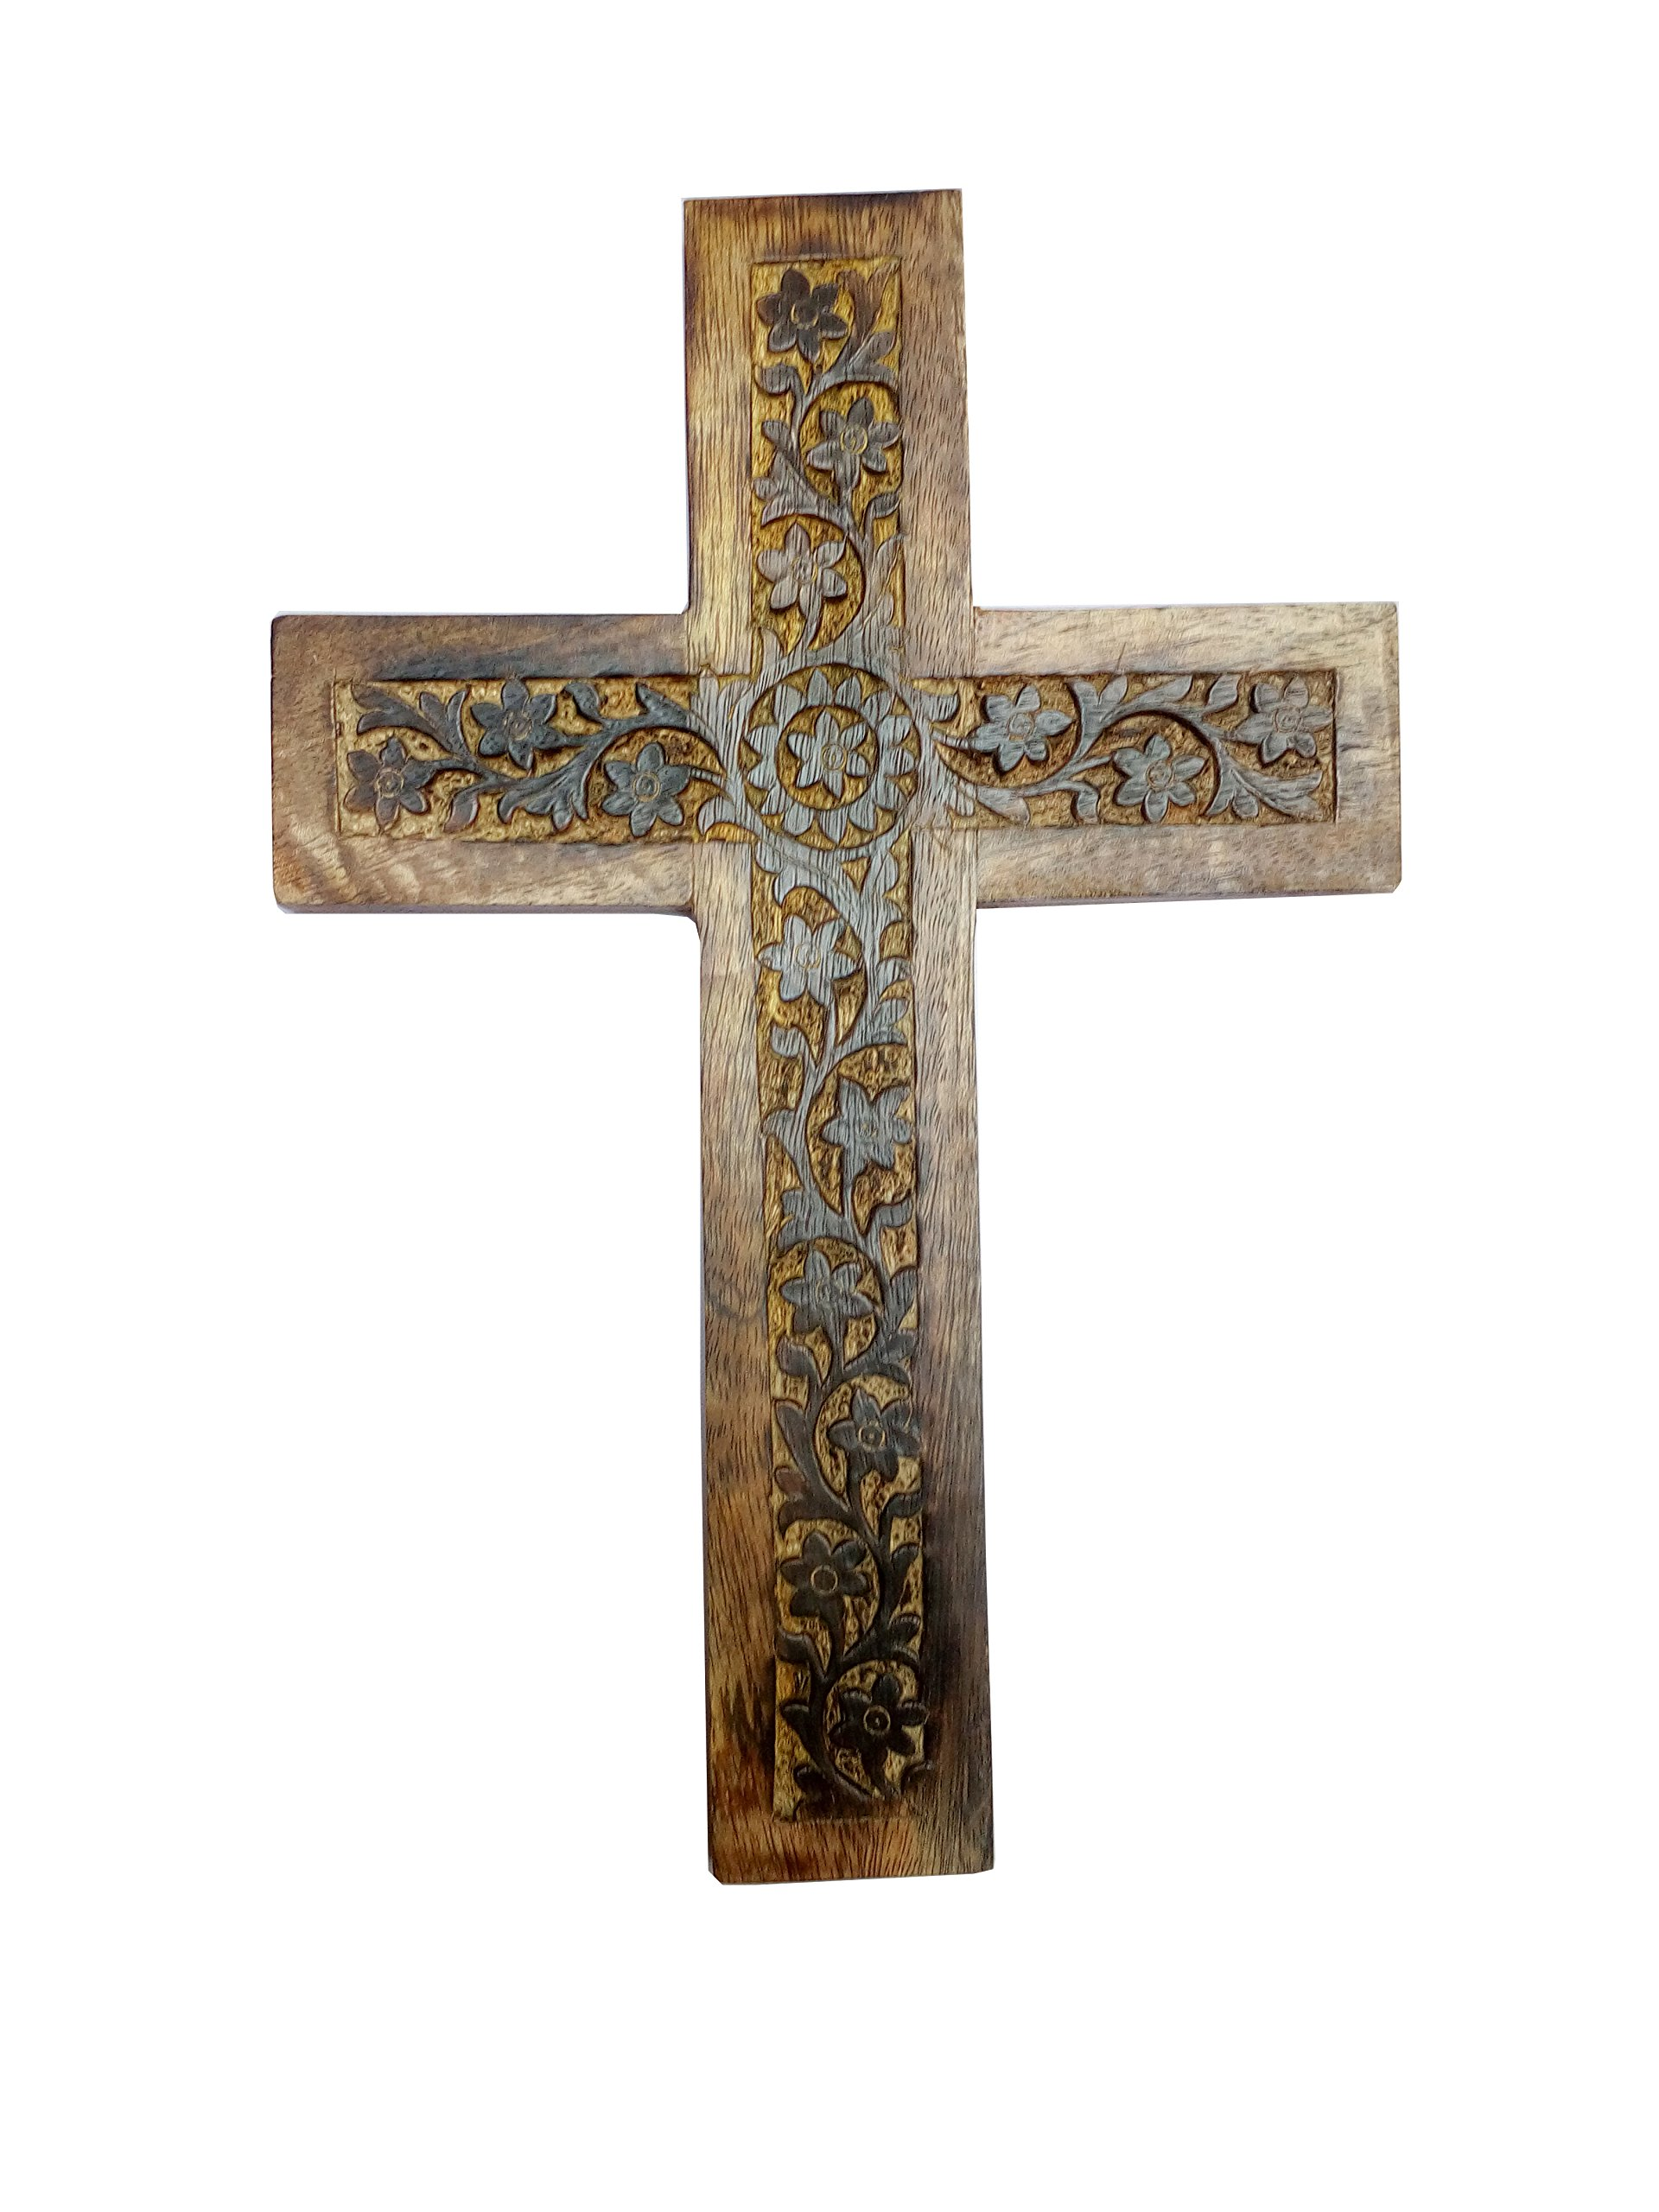 Hind Handicrafts Antique Mango Wood Hand Crafted Wall Mounted Holy Cross SET of 2 By (12 x 8 inch) (Wooden Engraved) (Hardwood)